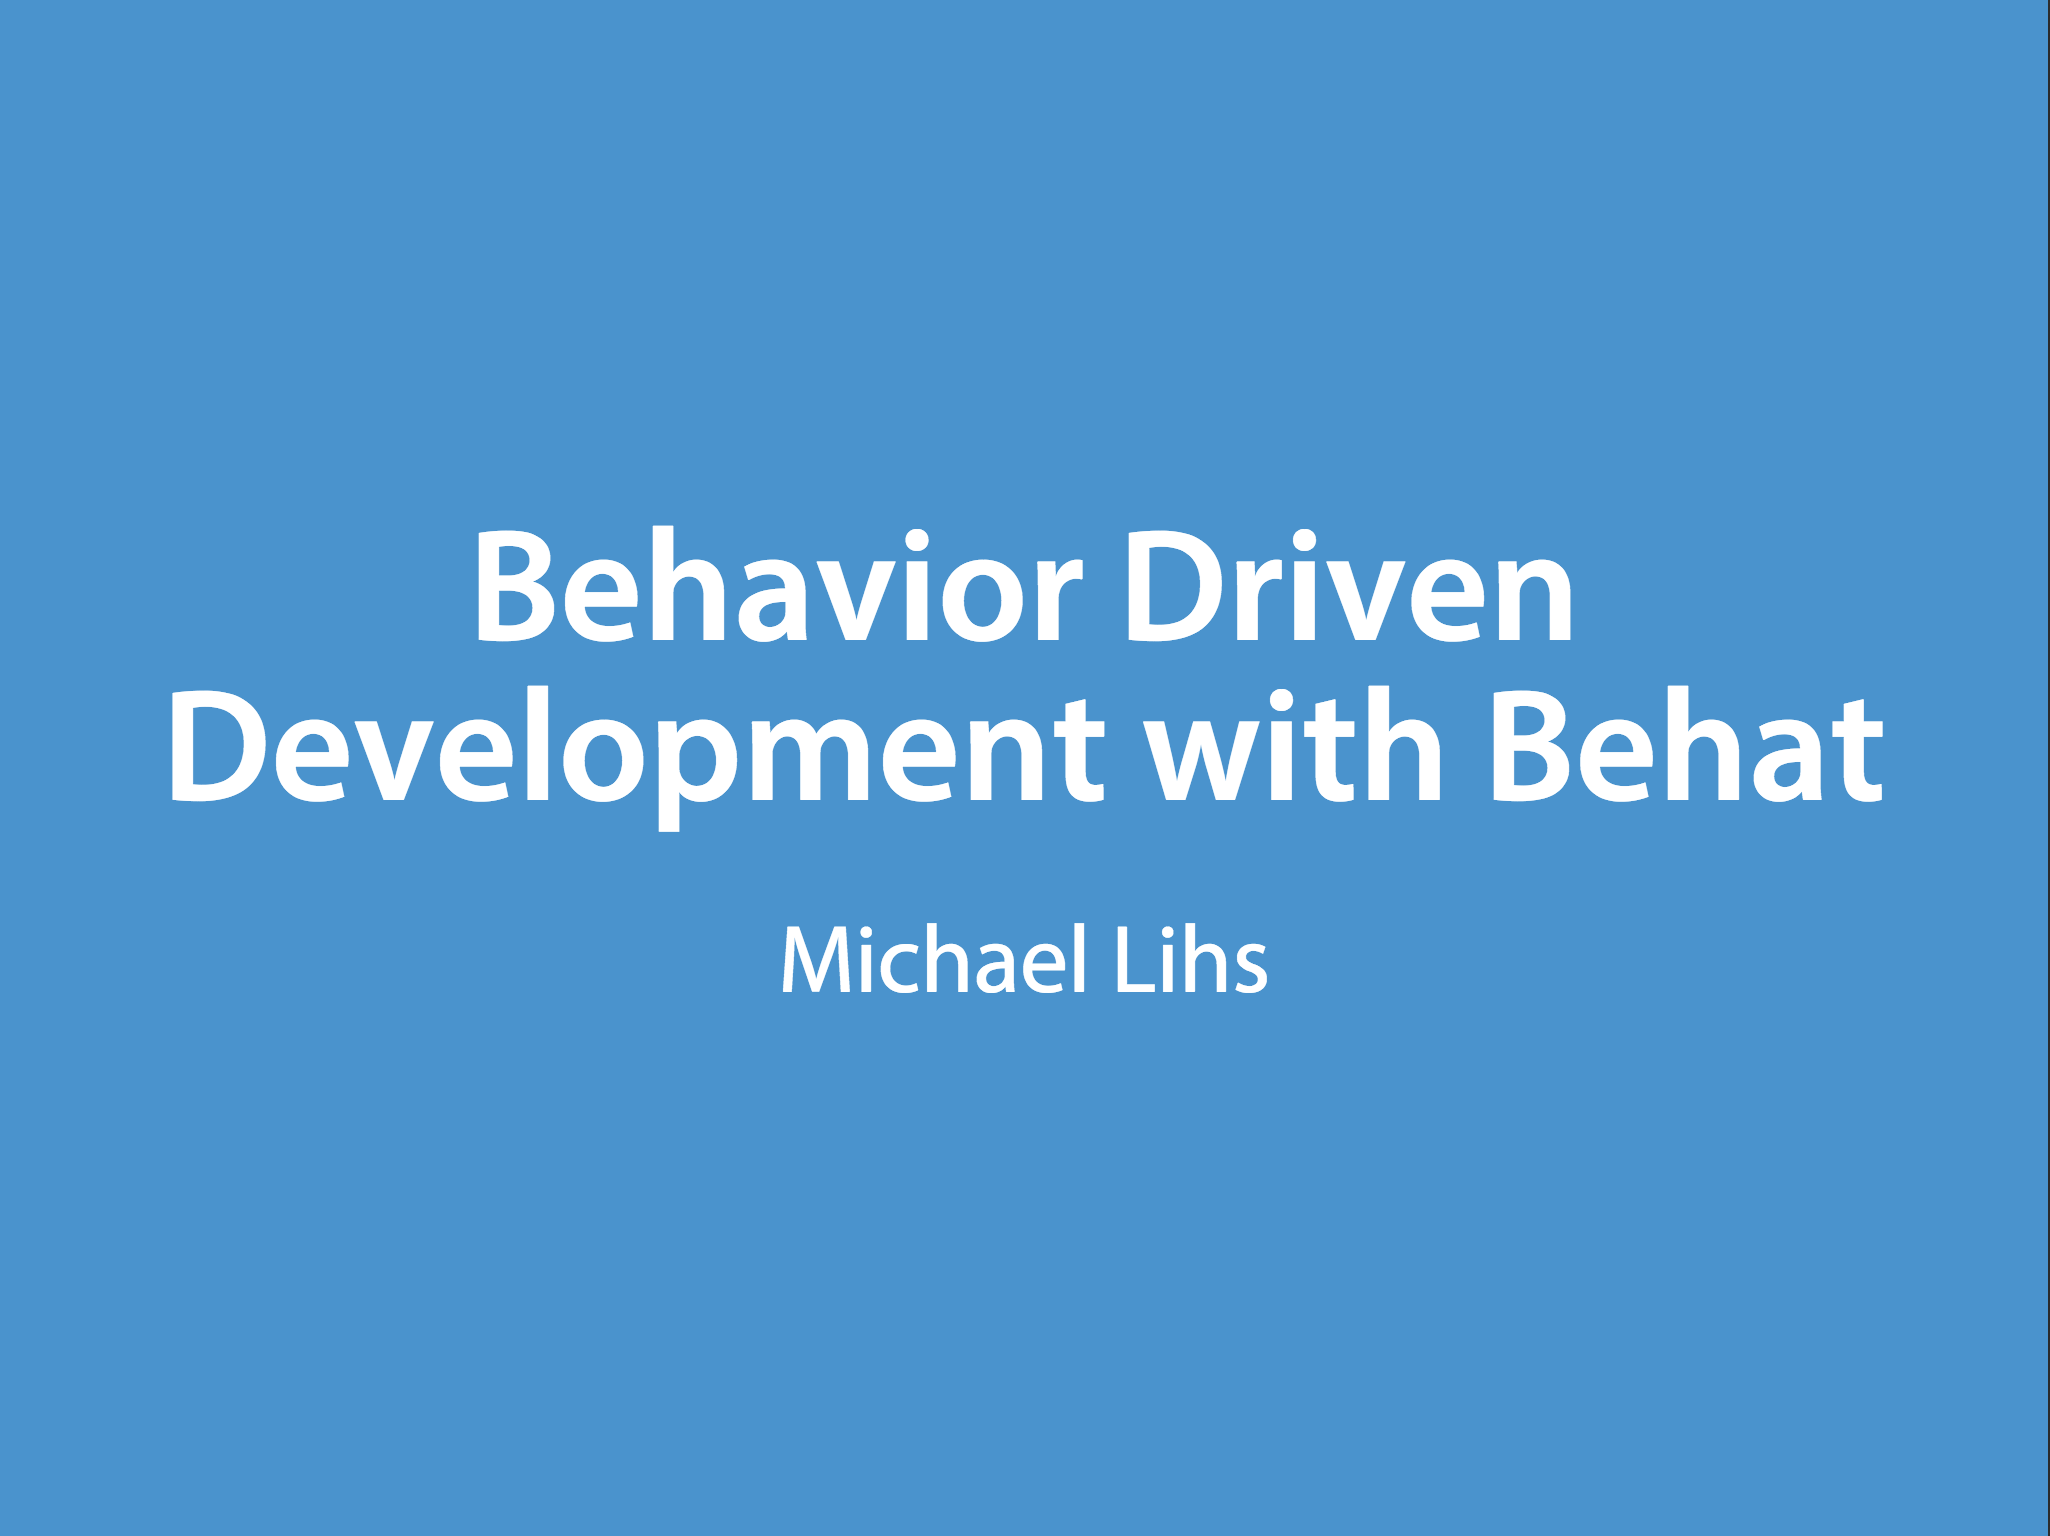 Slides for Behavior Driven Development with Behat